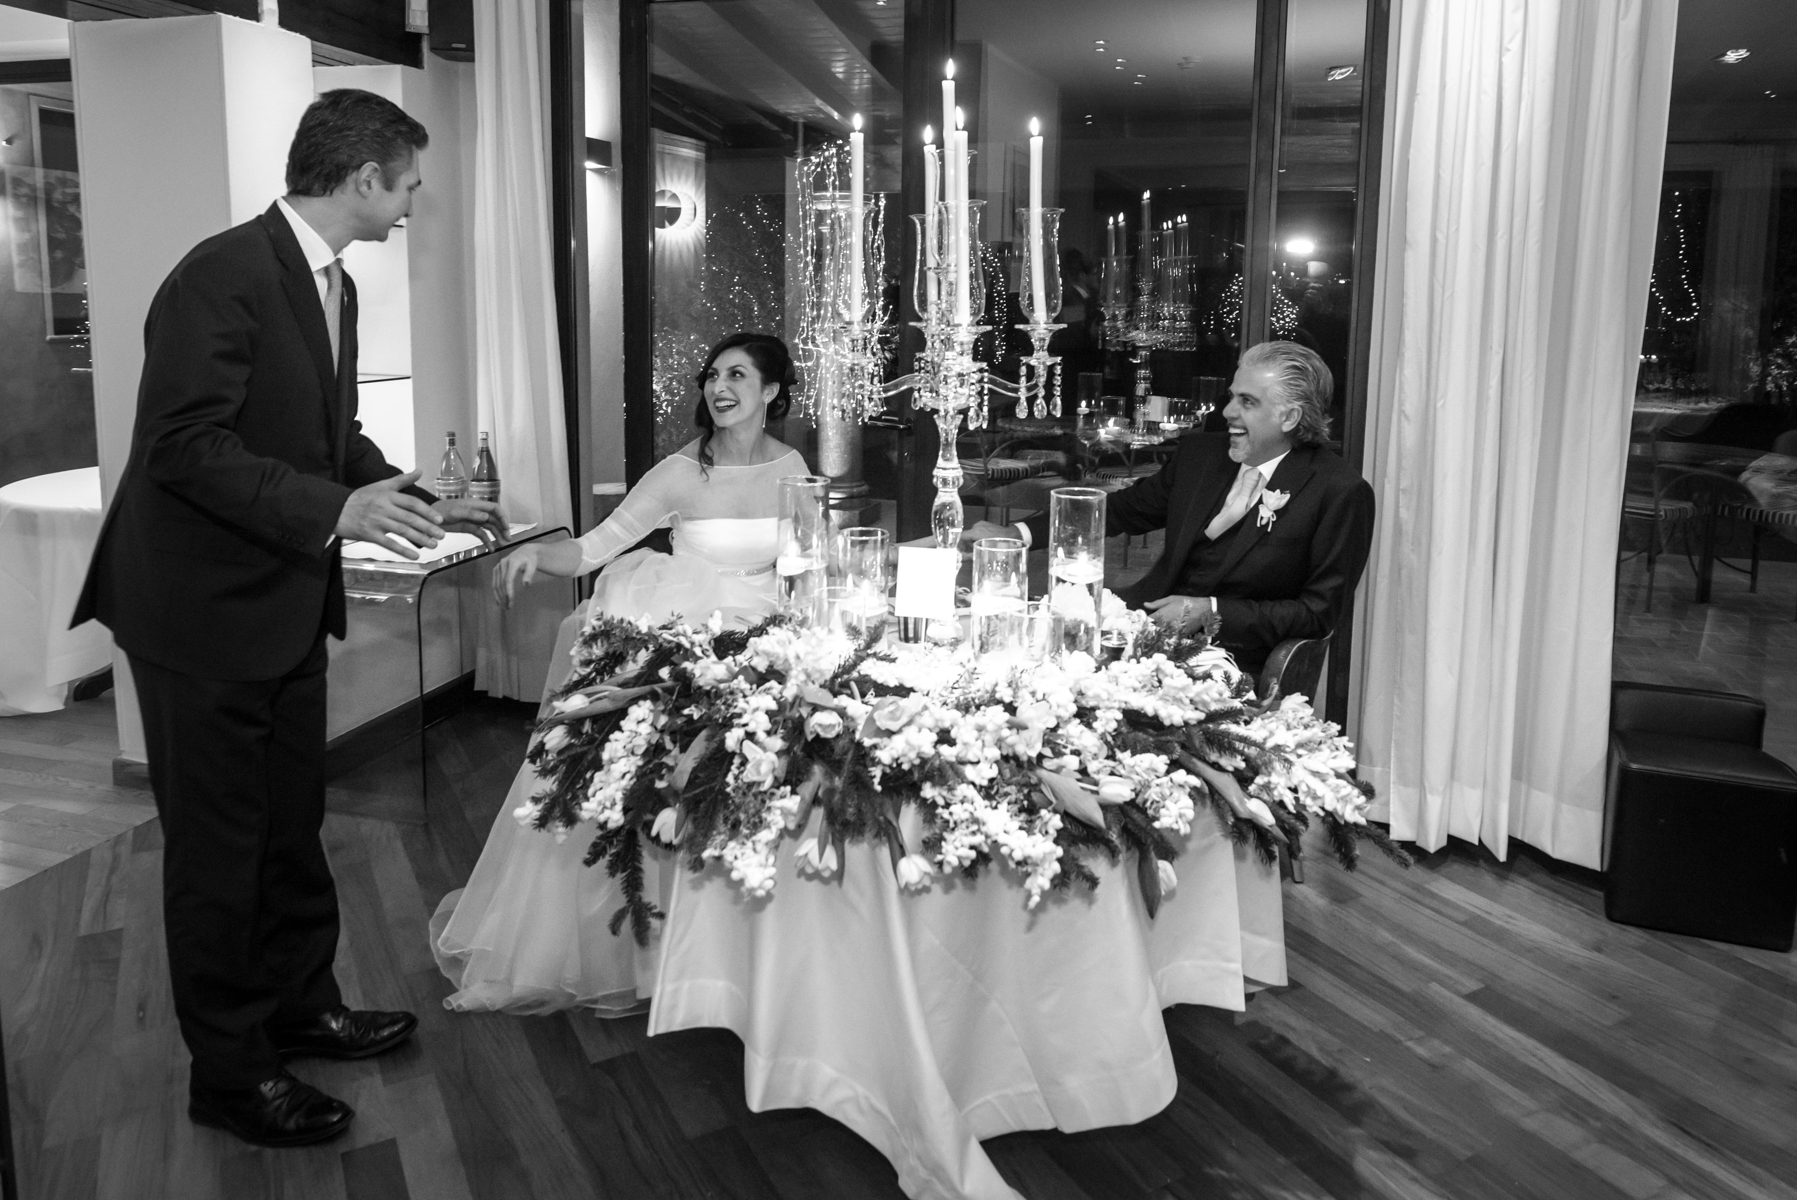 Dal Pescatore Restaurant Elopement Venue Image - Mantua, Italy | The newlyweds and the few guests take their places at the tables